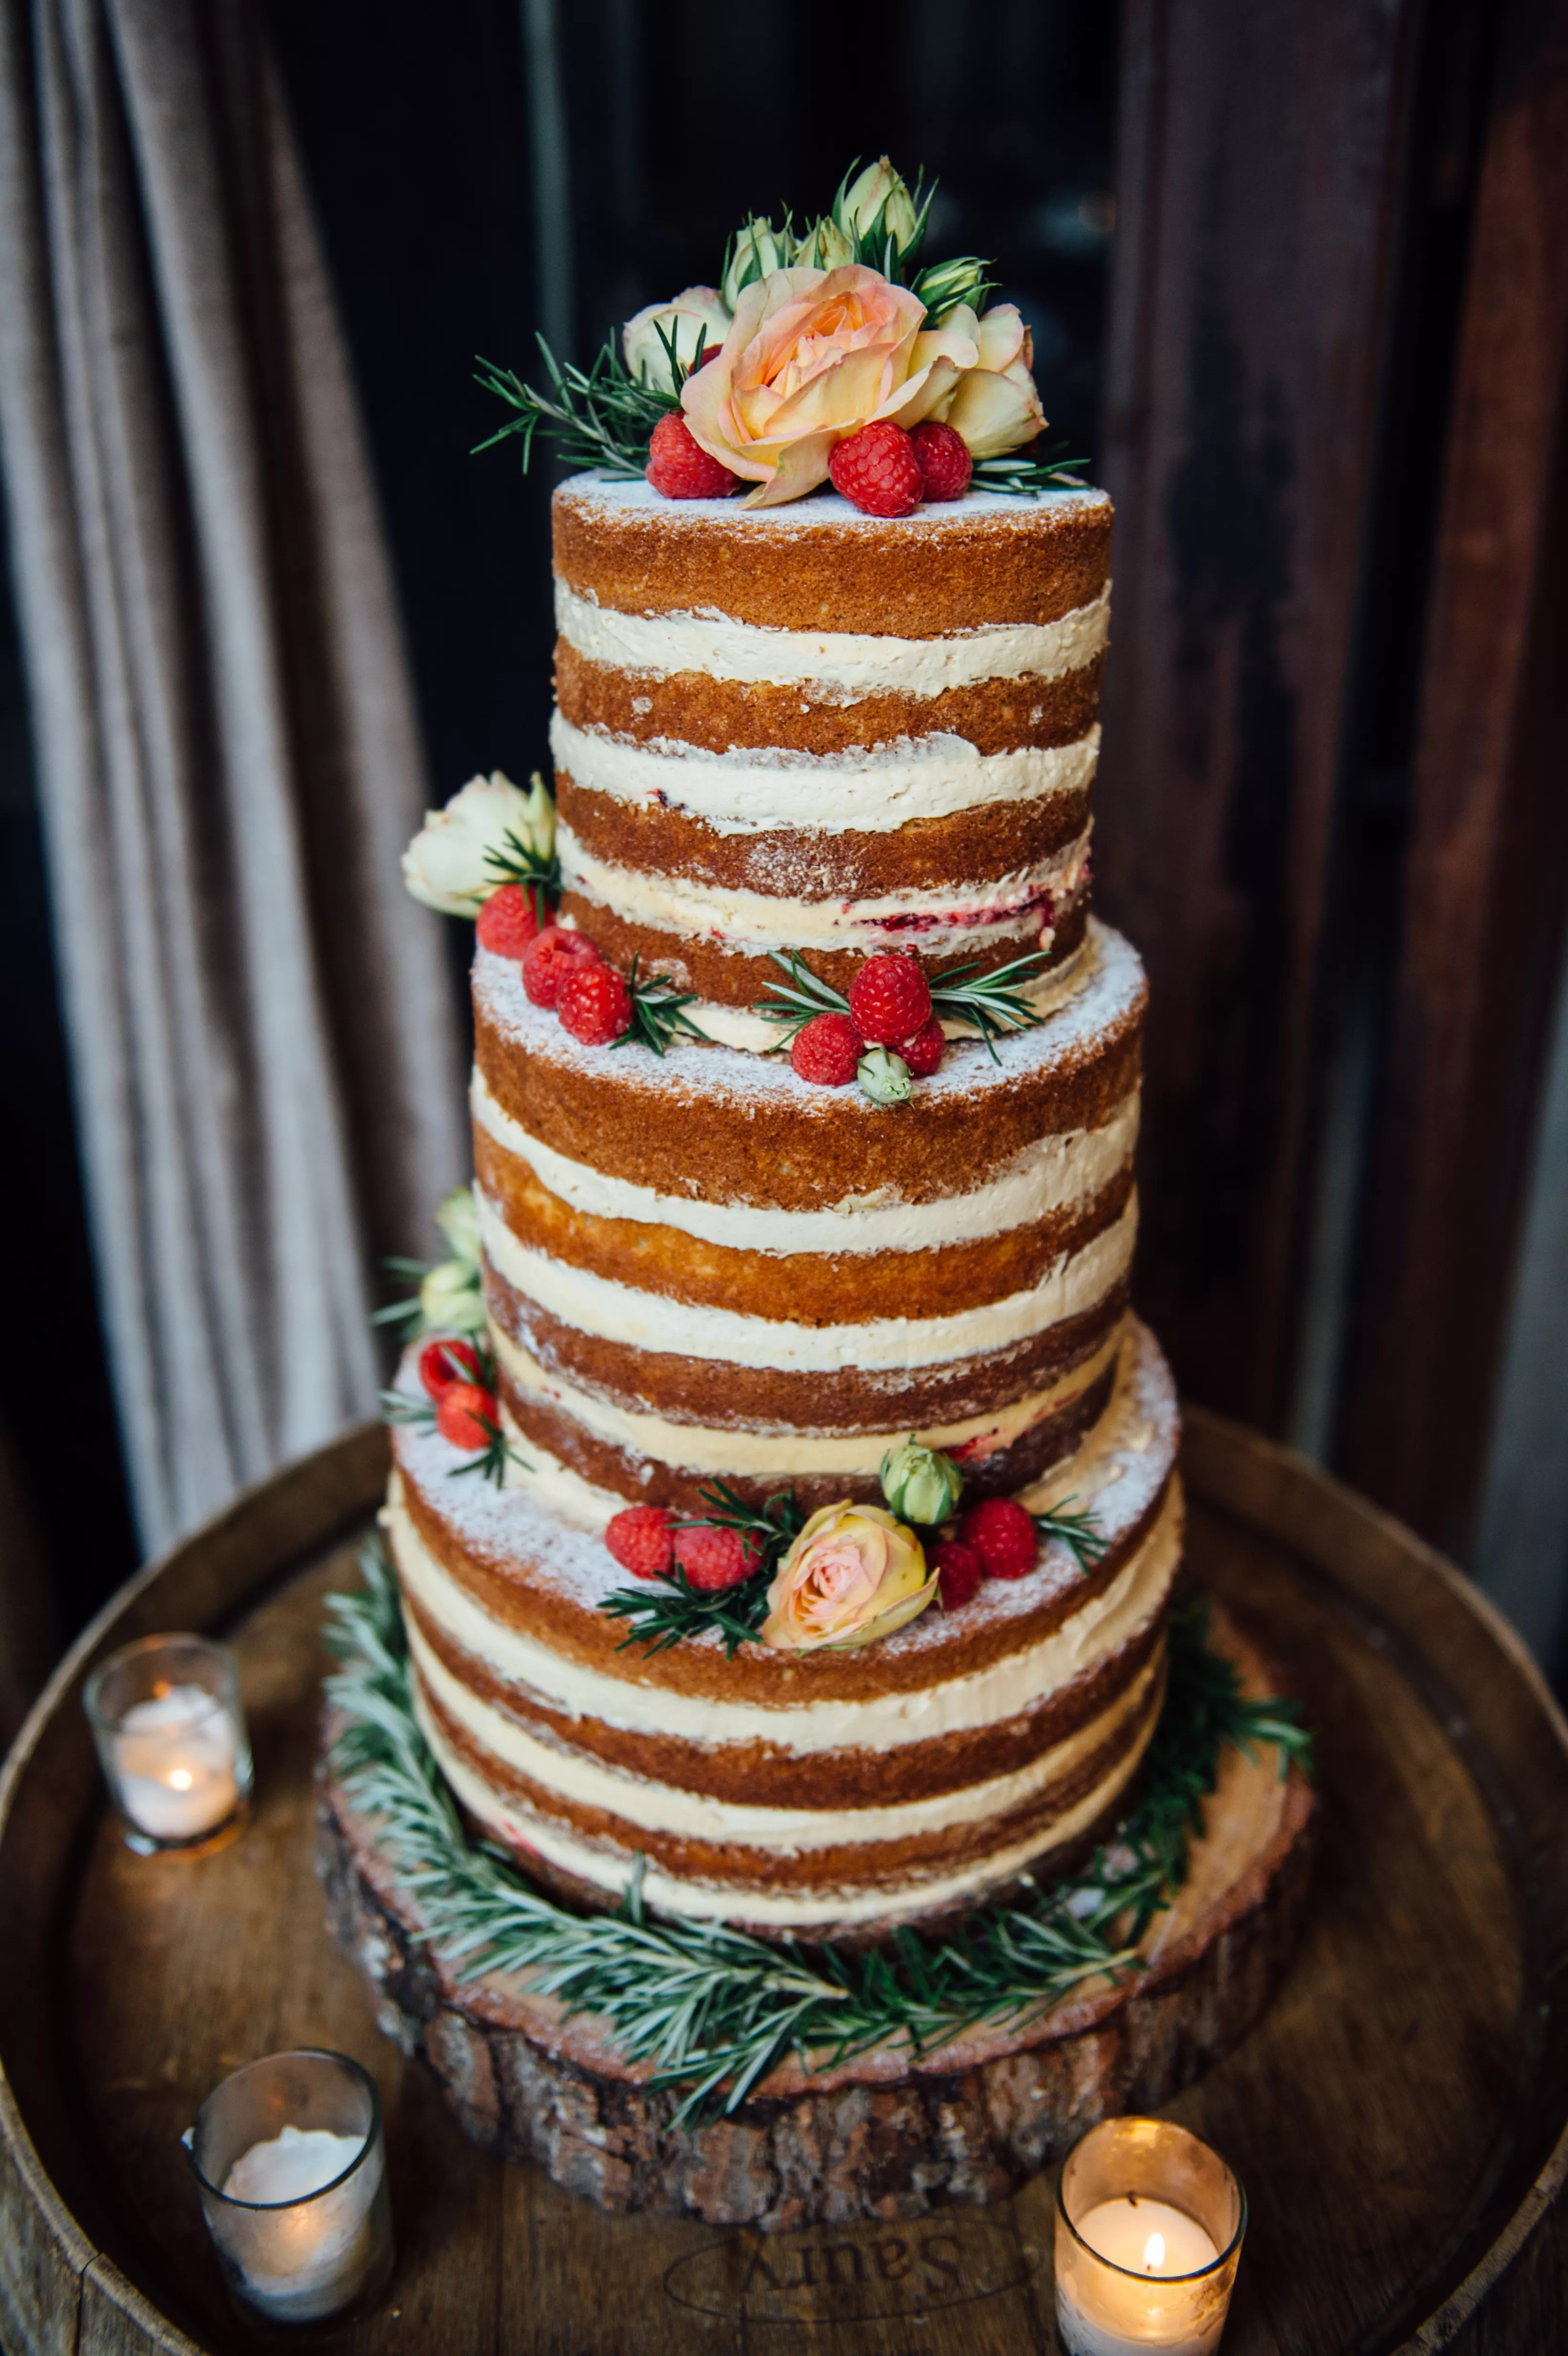 Peanut Butter and Jelly Naked Cake